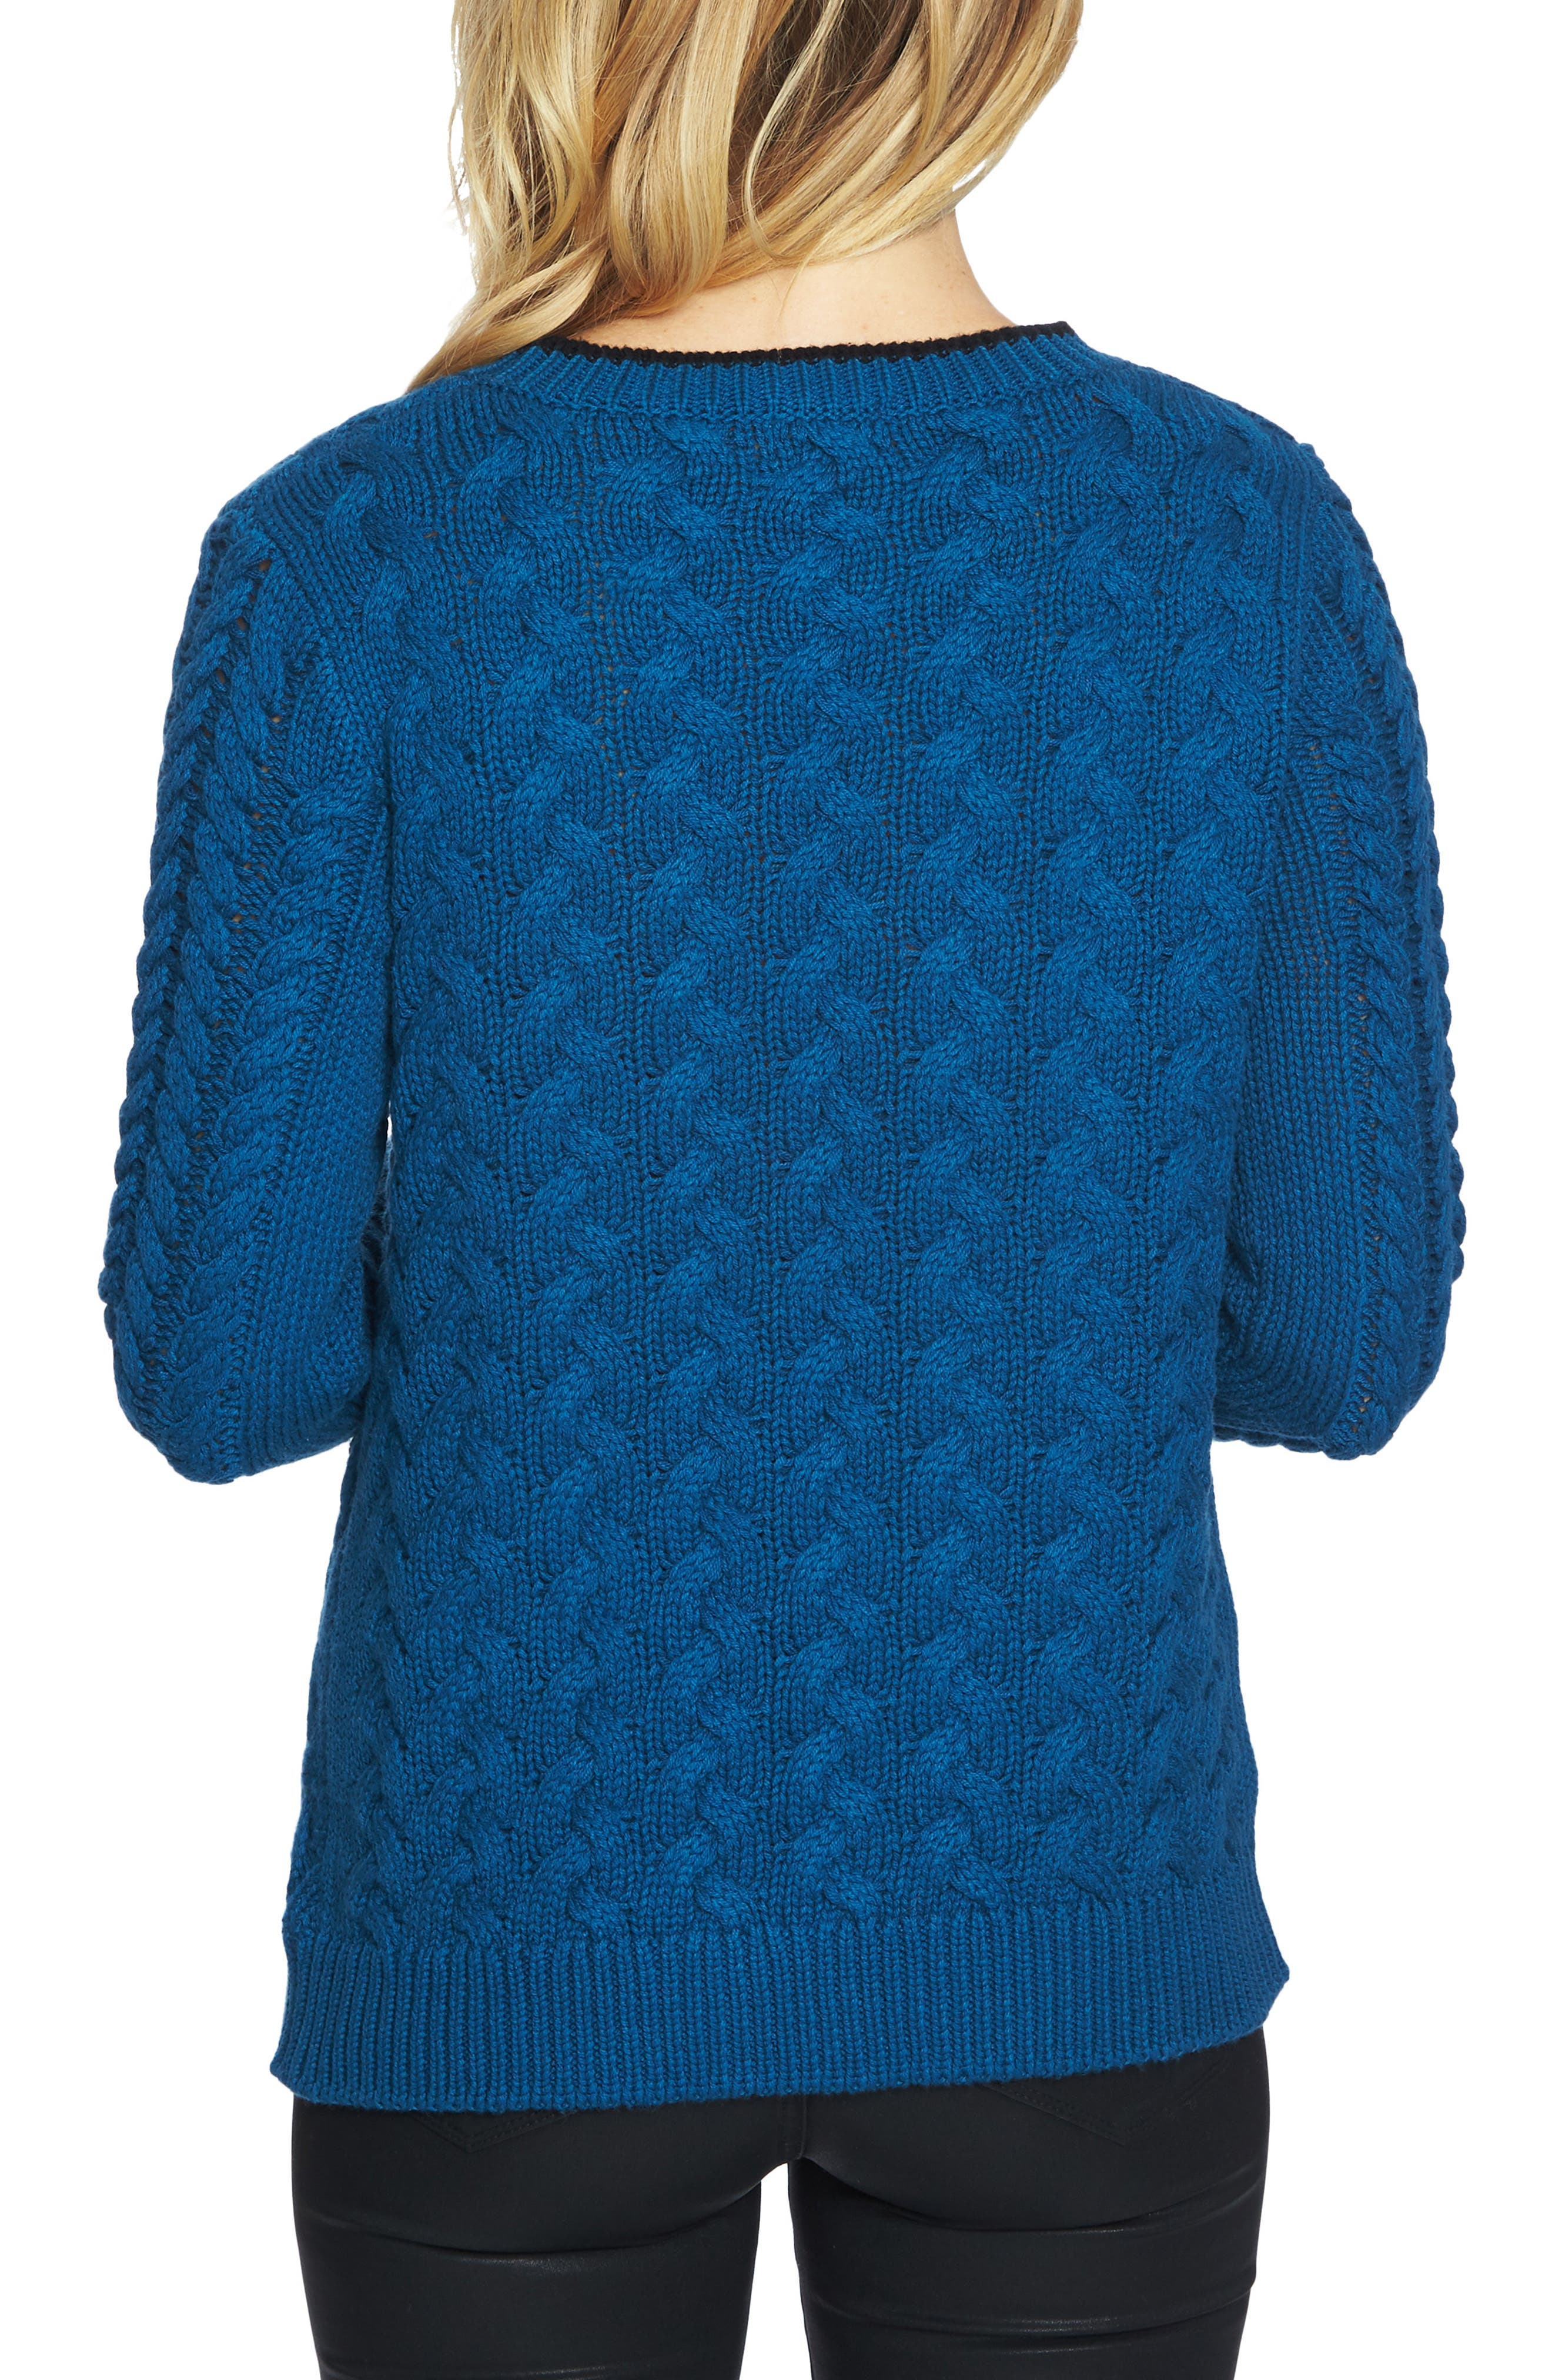 Double Layer Cable Stitch Sweater,                             Alternate thumbnail 2, color,                             Port Blue